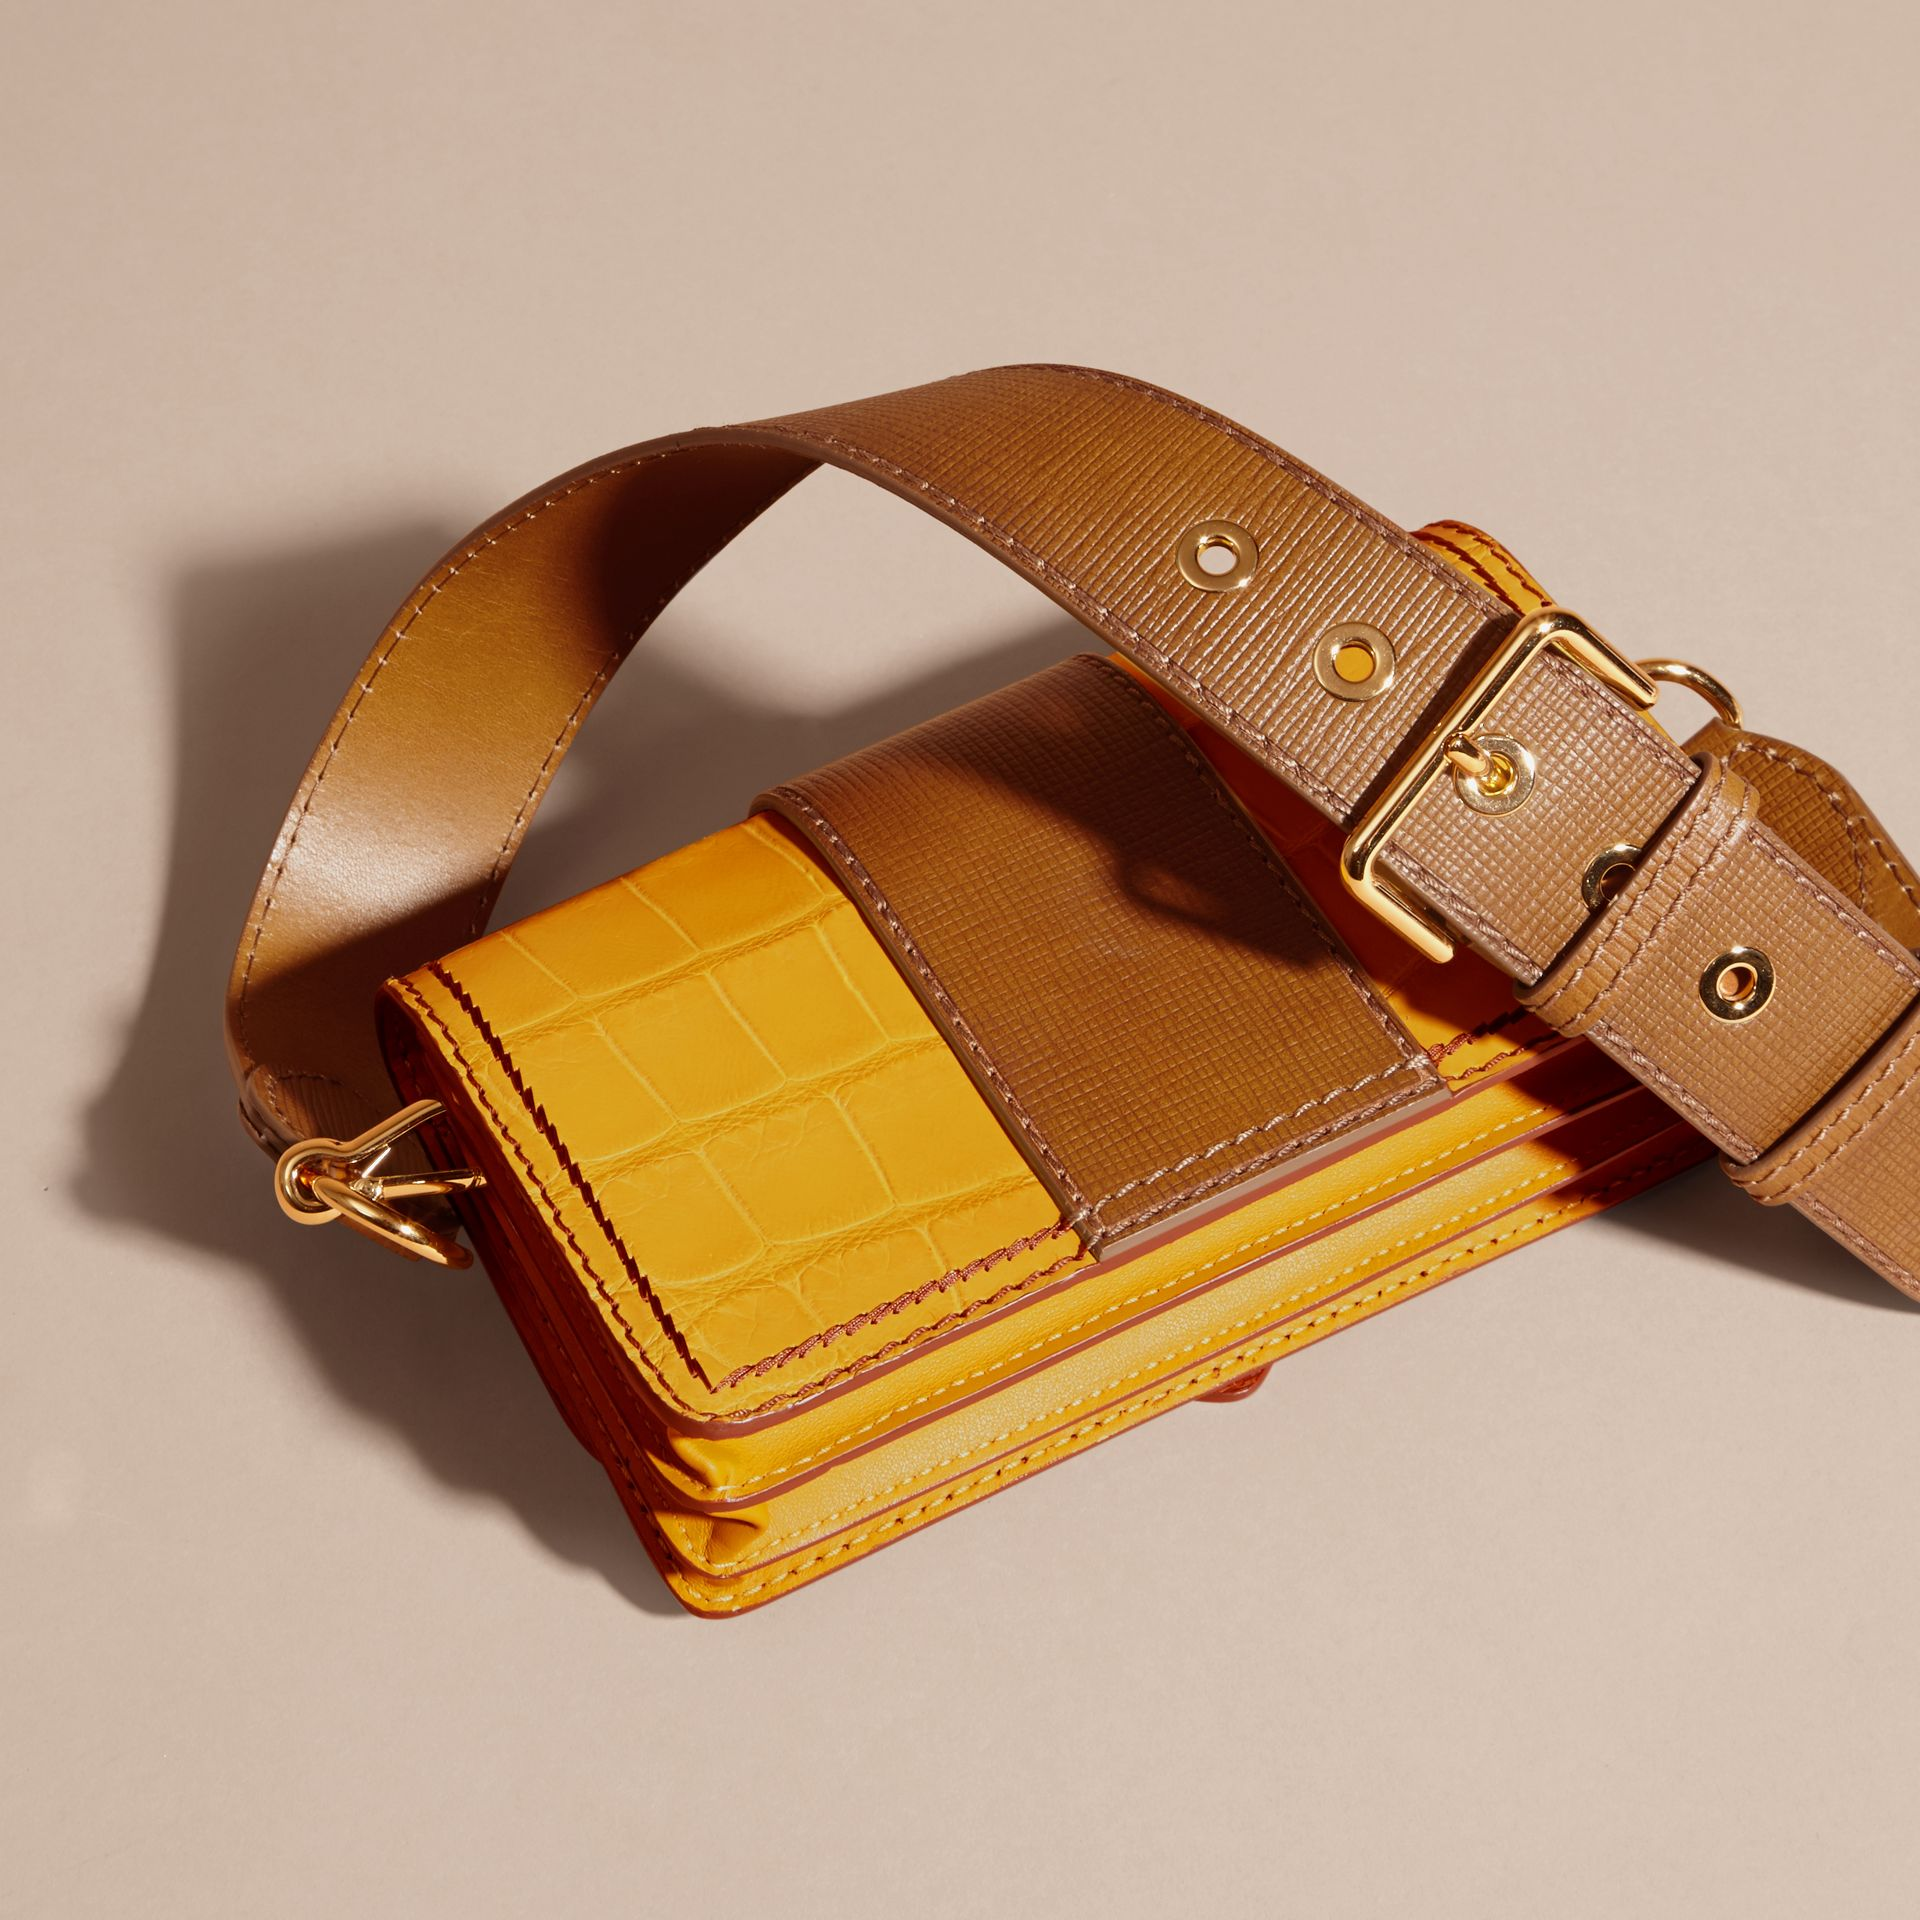 The Small Buckle Bag in Alligator and Leather in Citrus Yellow / Tan - Women | Burberry Canada - gallery image 5